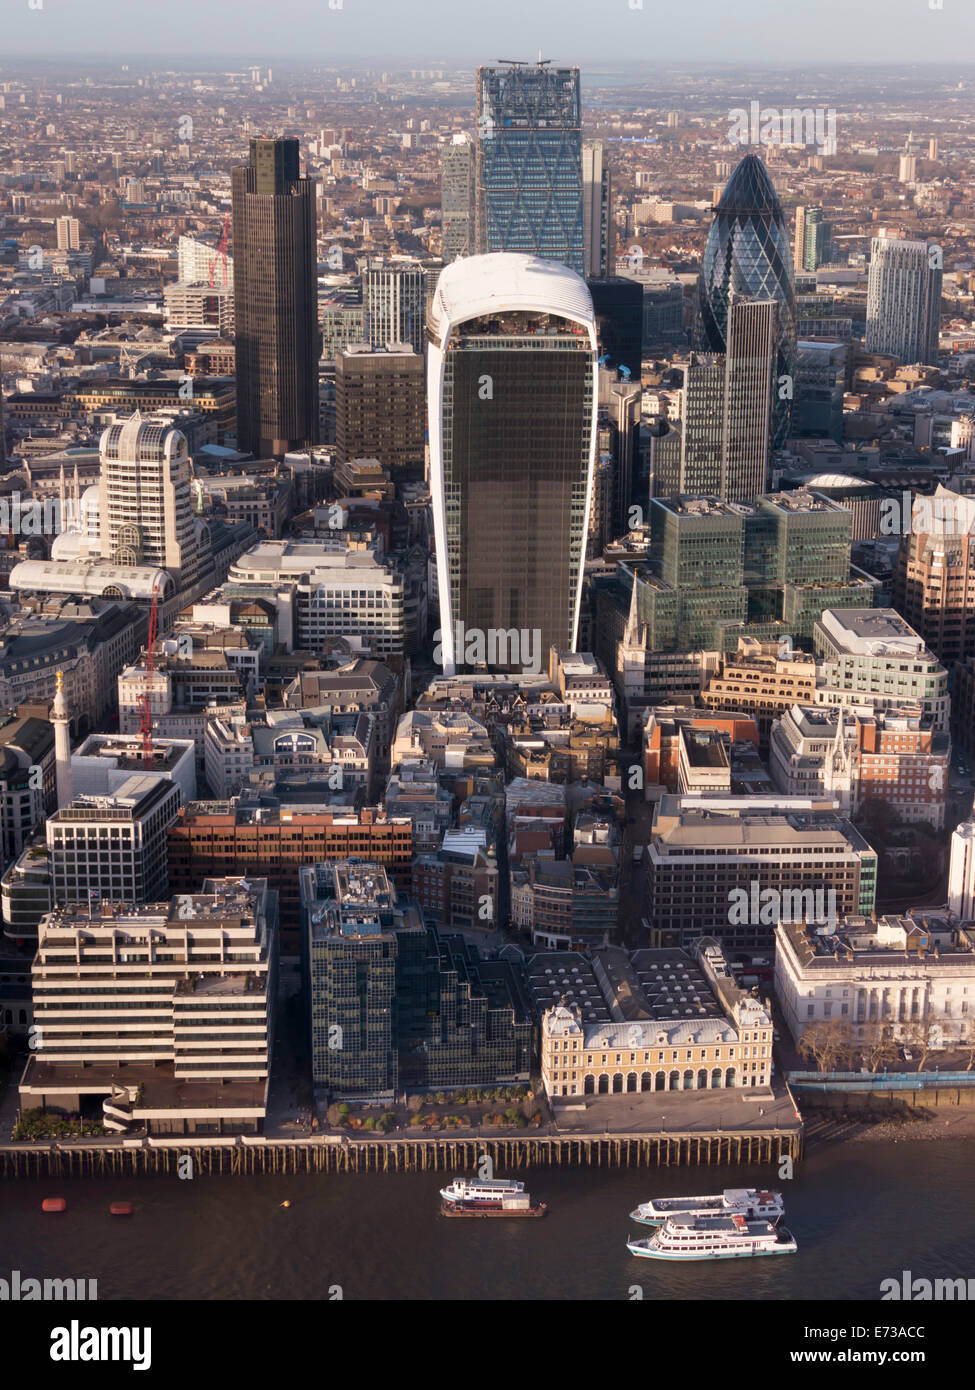 Aerial London Cityscape dominated by Walkie Talkie tower, London, England, United Kingdom, Europe - Stock Image